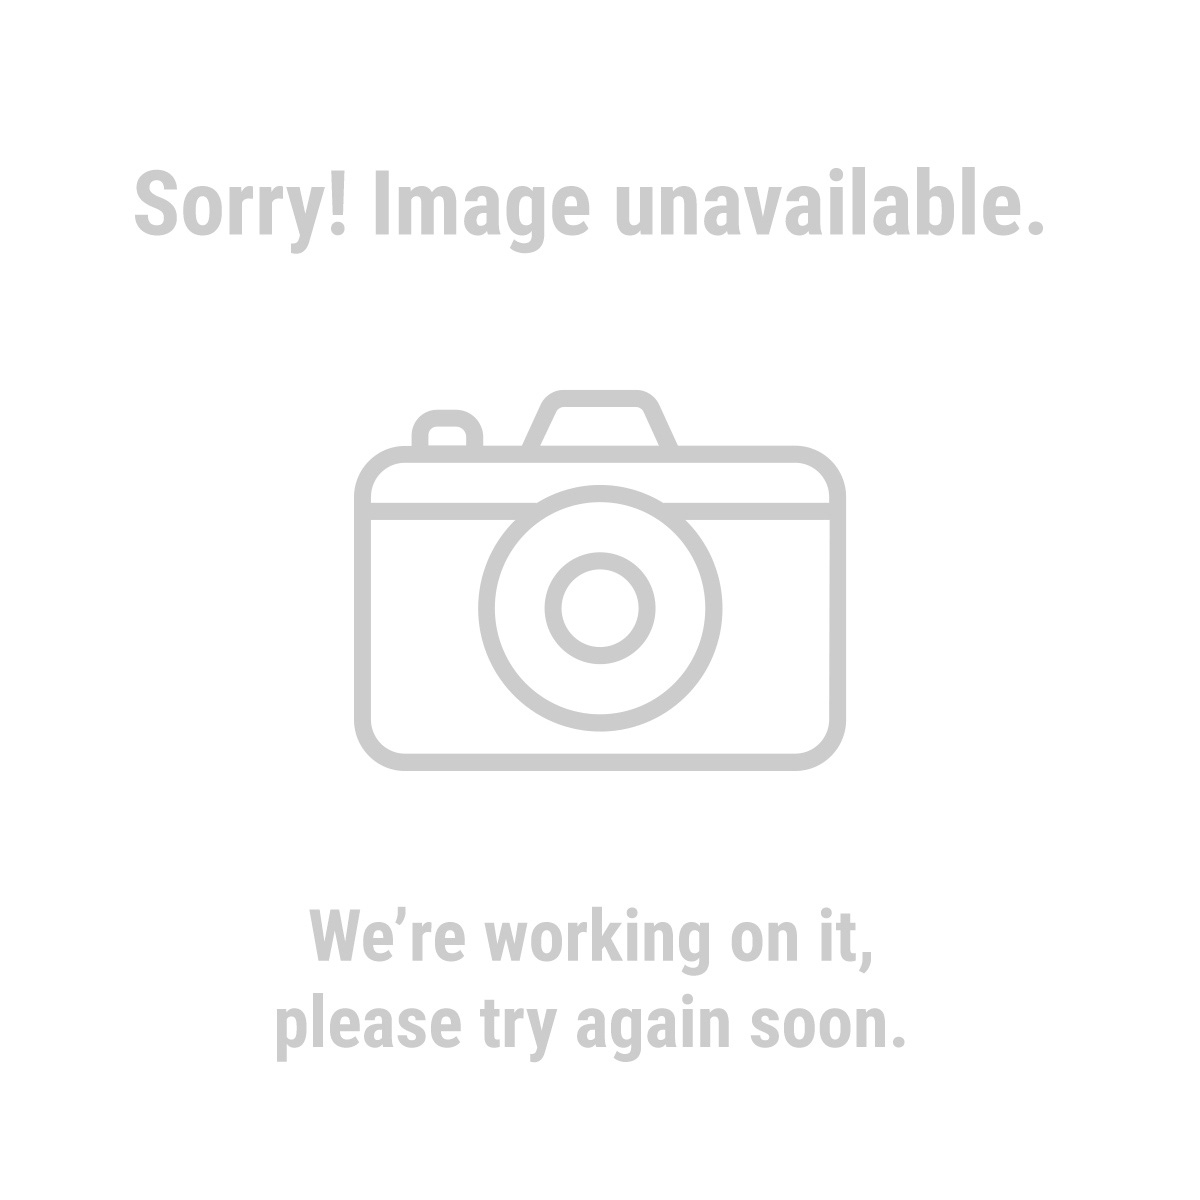 Chicago Electric Welding Systems 94841 Regulator Gauge